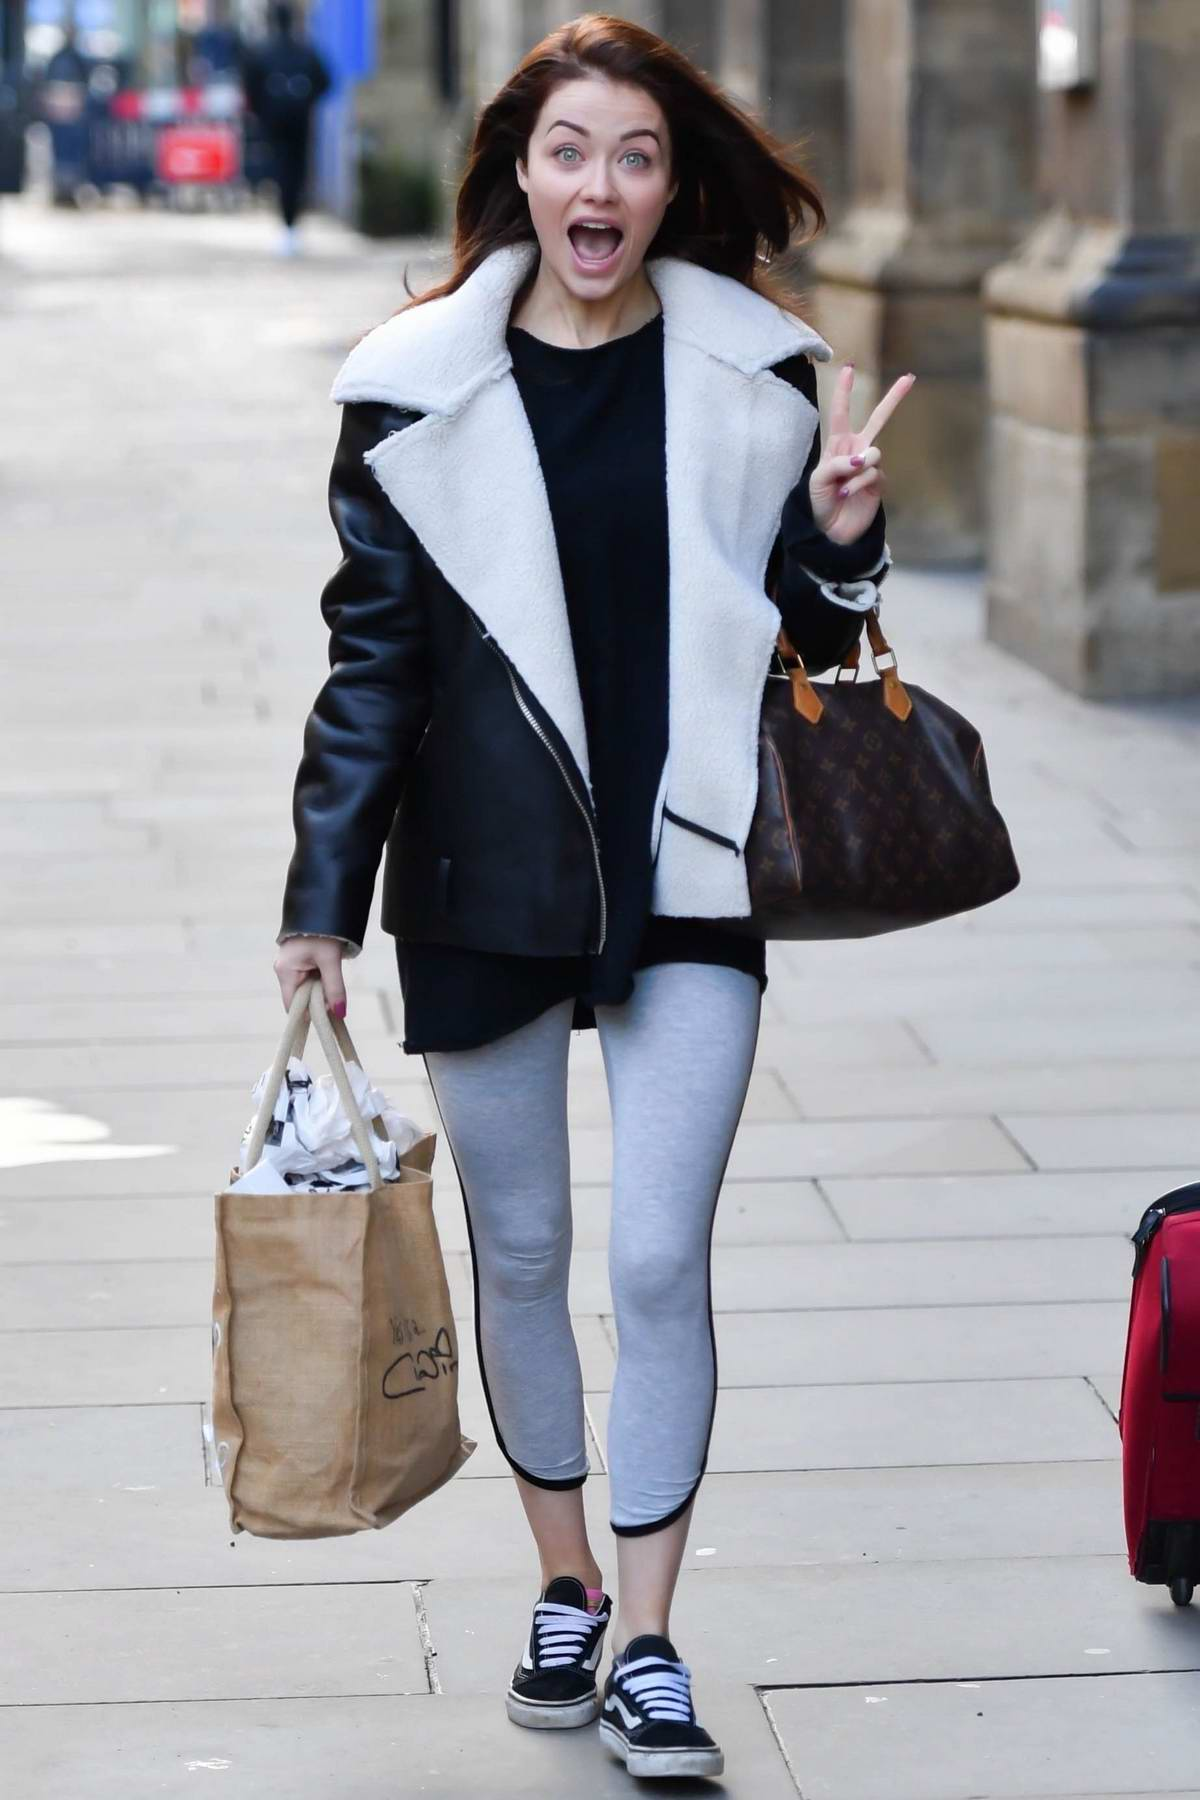 Jess Impiazzi spotted as she leaves her hotel in Manchester, UK